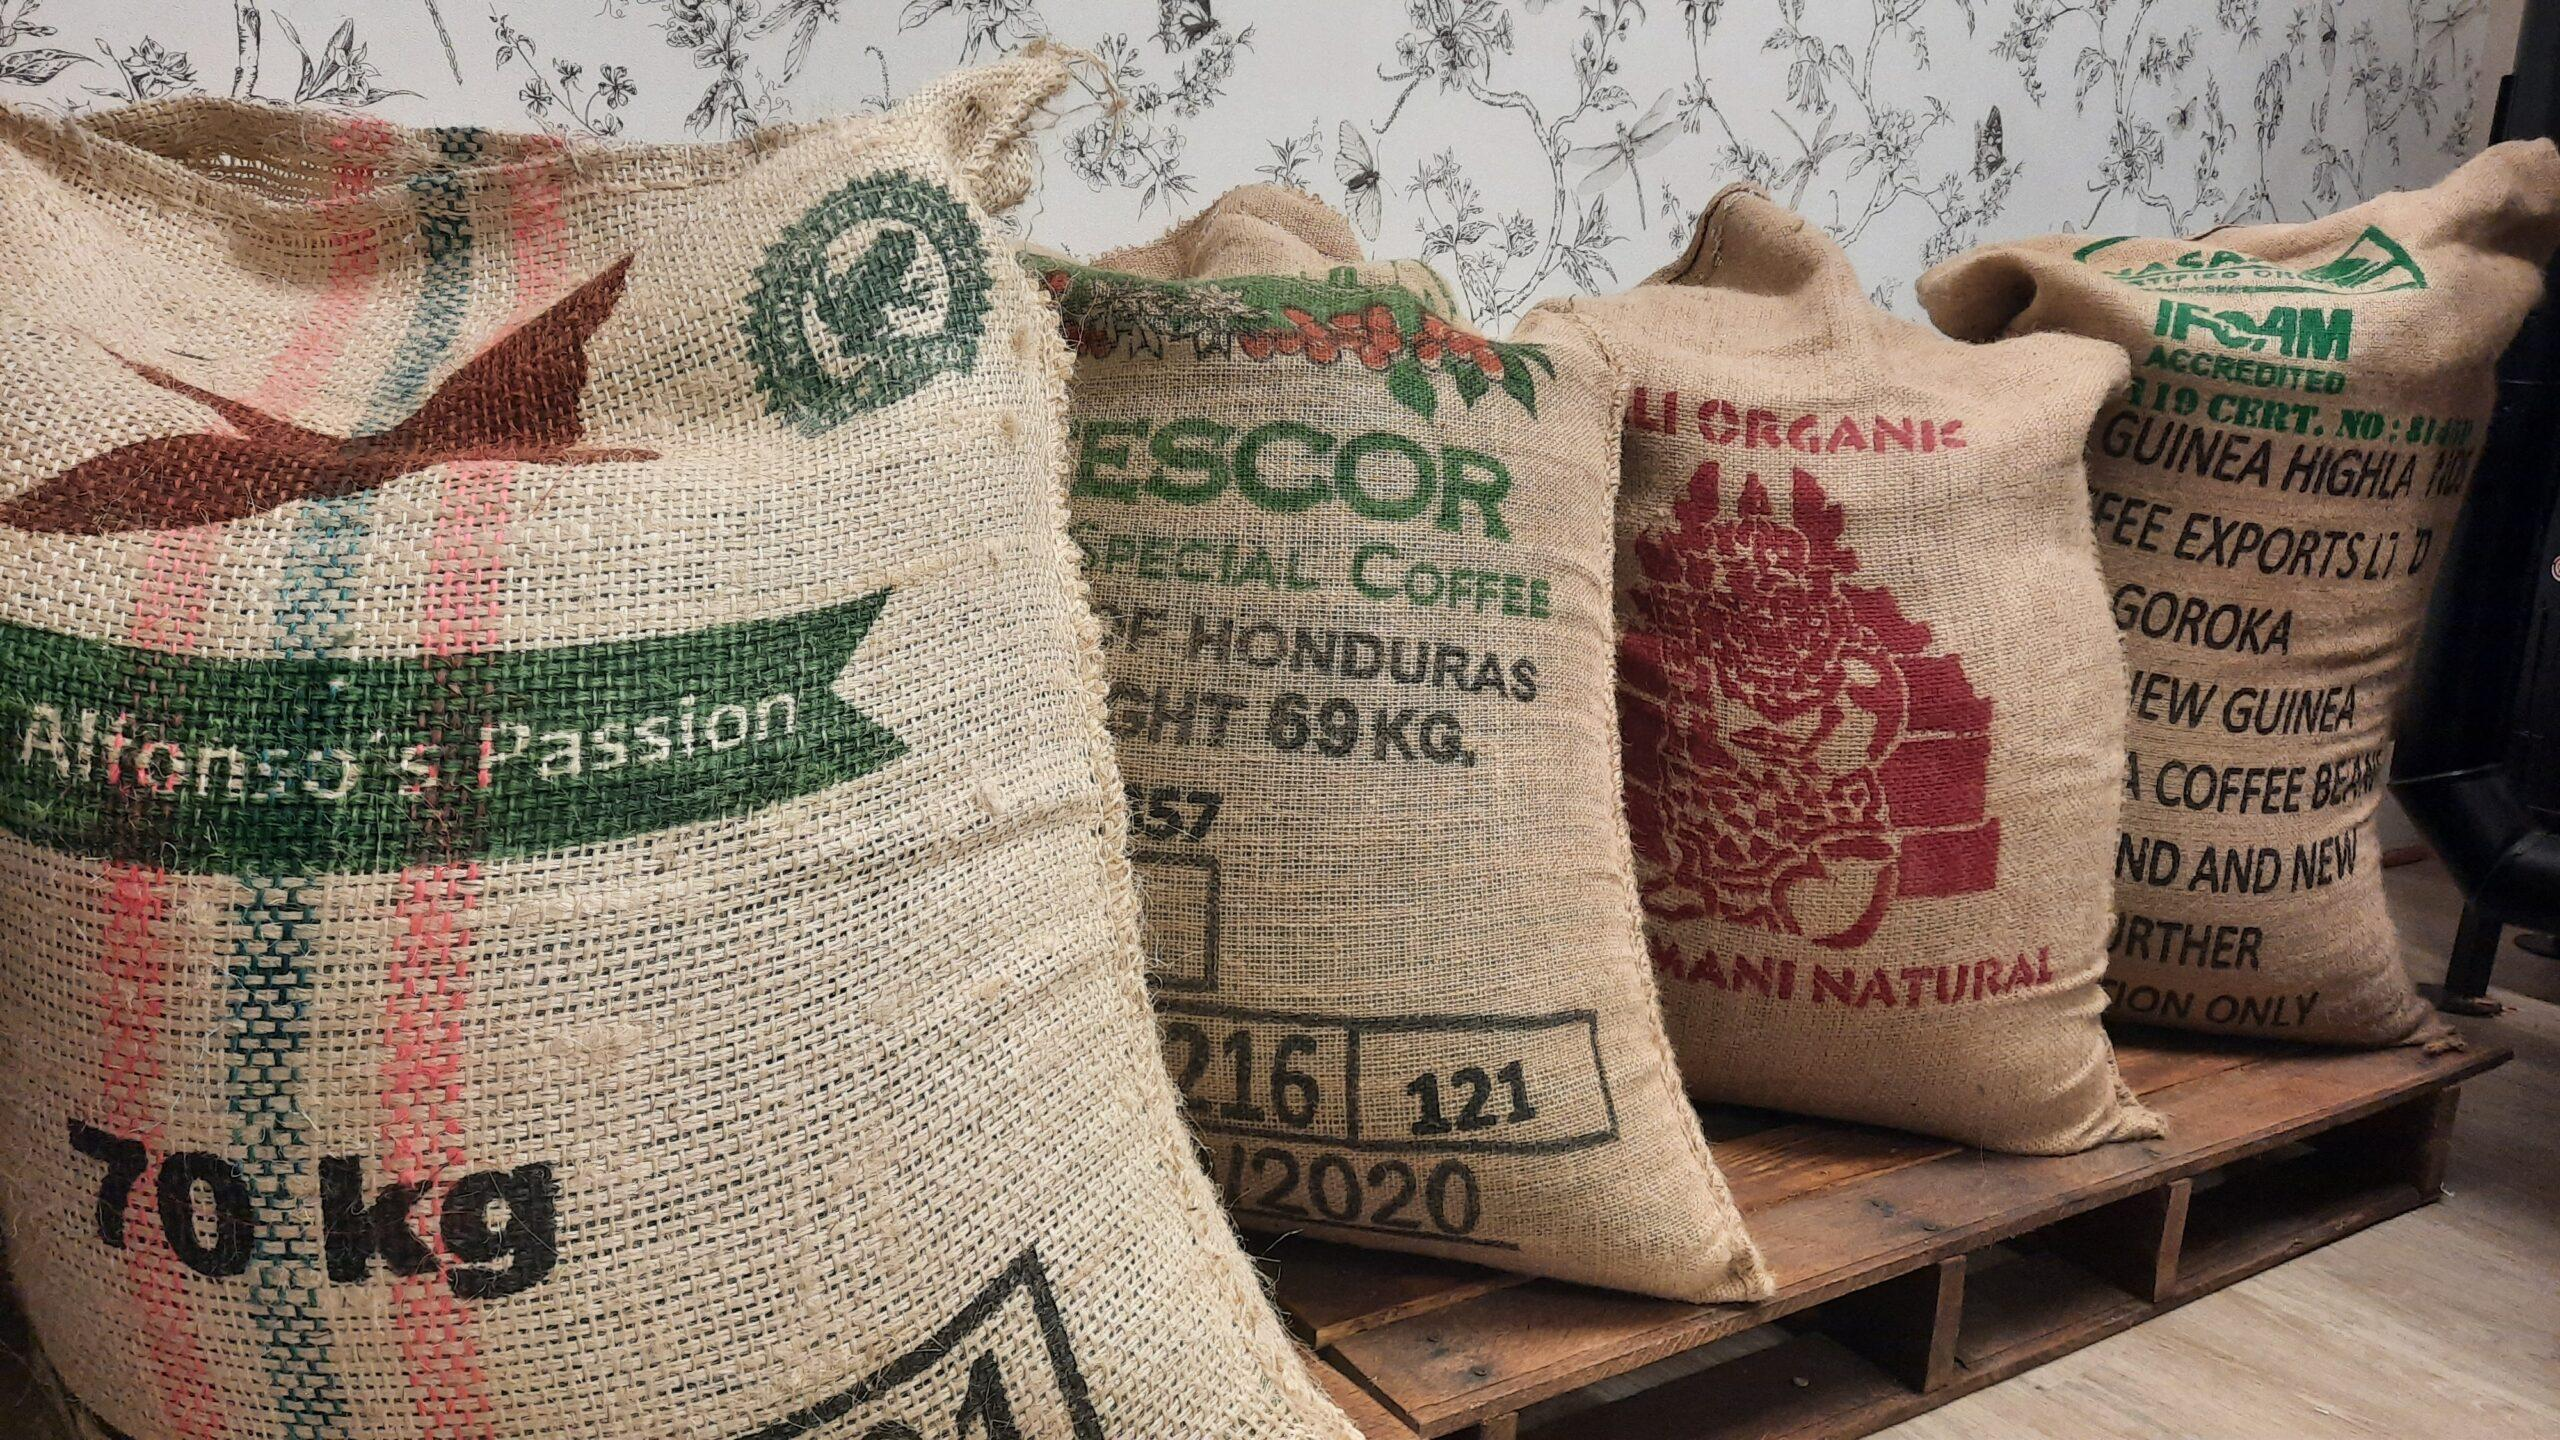 Bags of Coffee Beans for wholesale